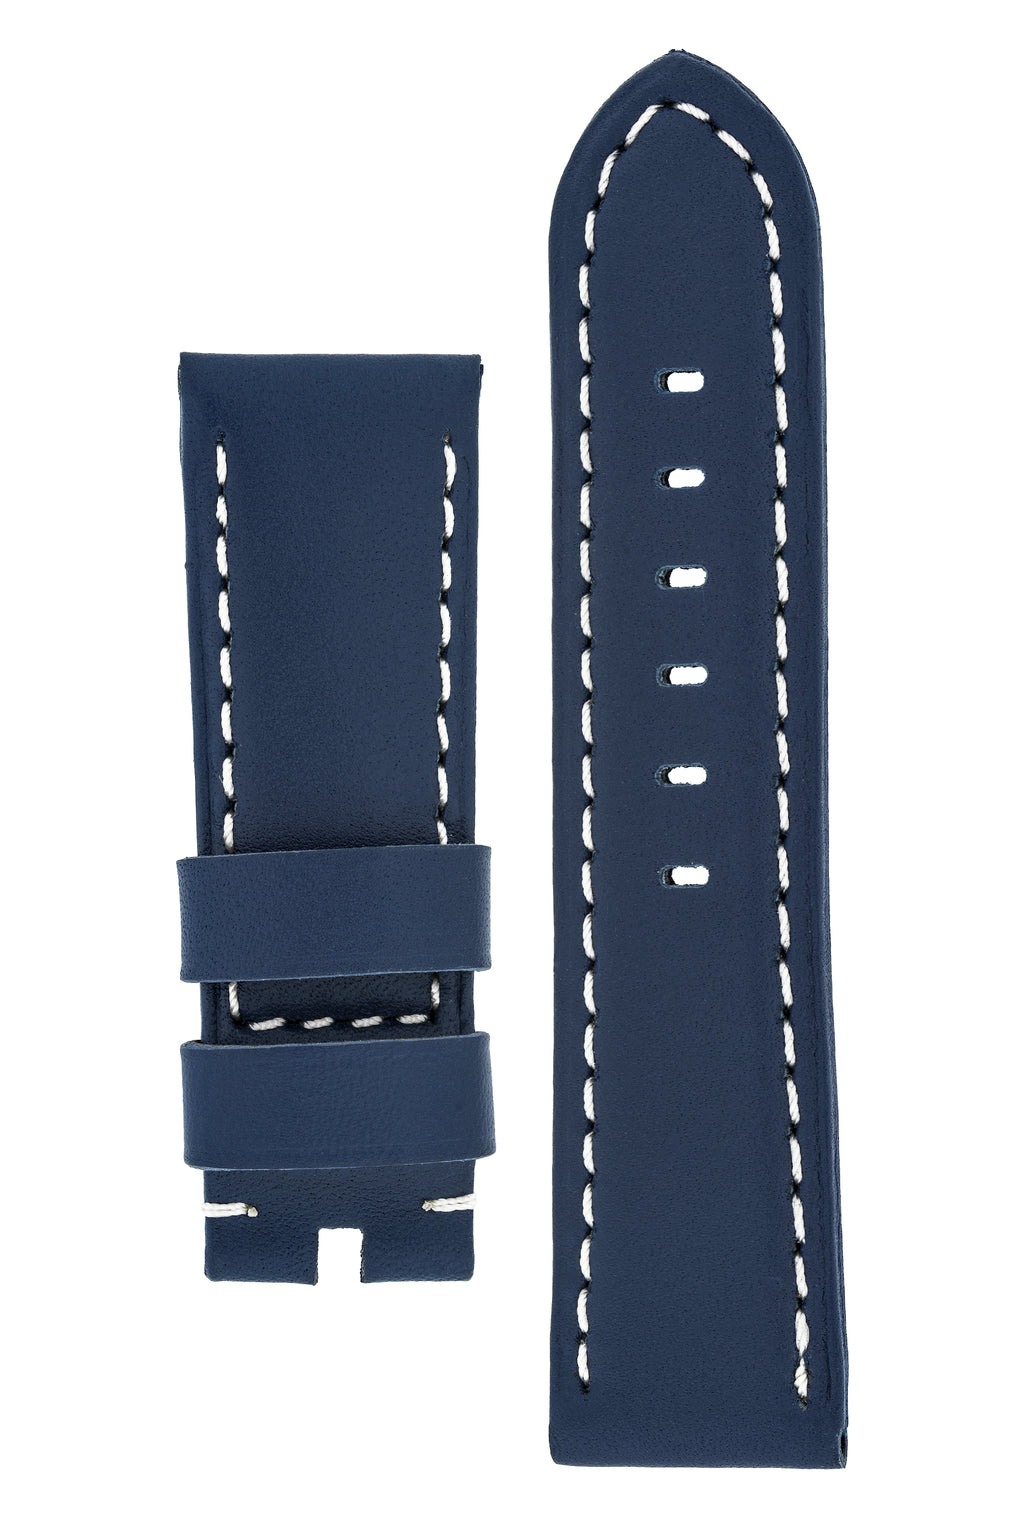 Panerai-Style Calf Leather Watch Strap in BLUE